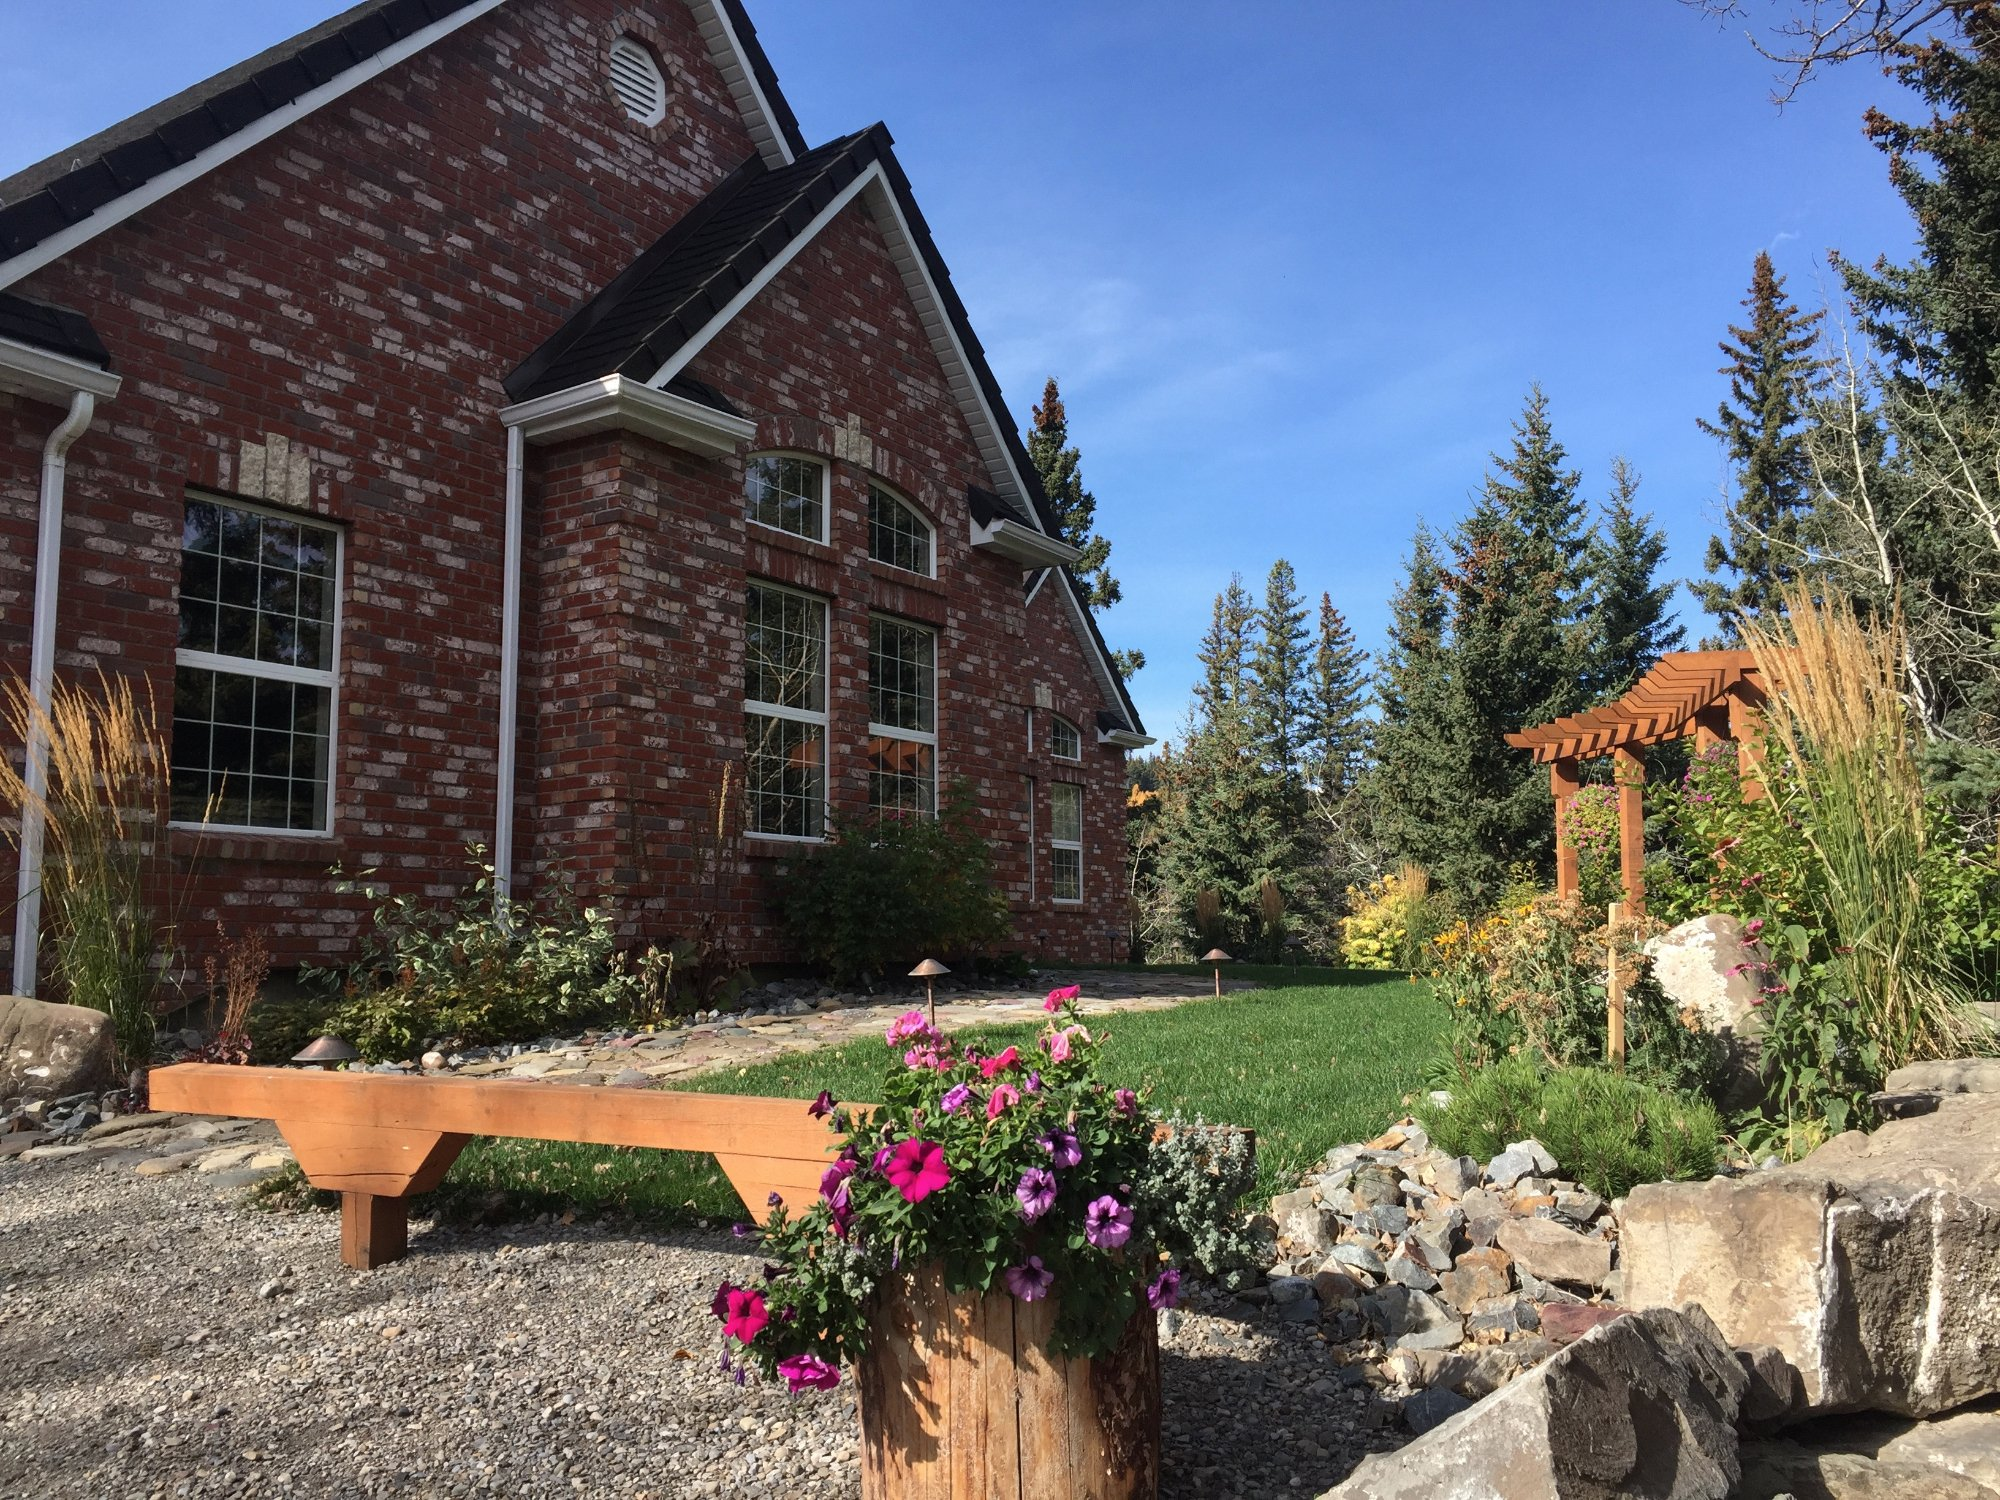 Aspen Grove Bed & Breakfast